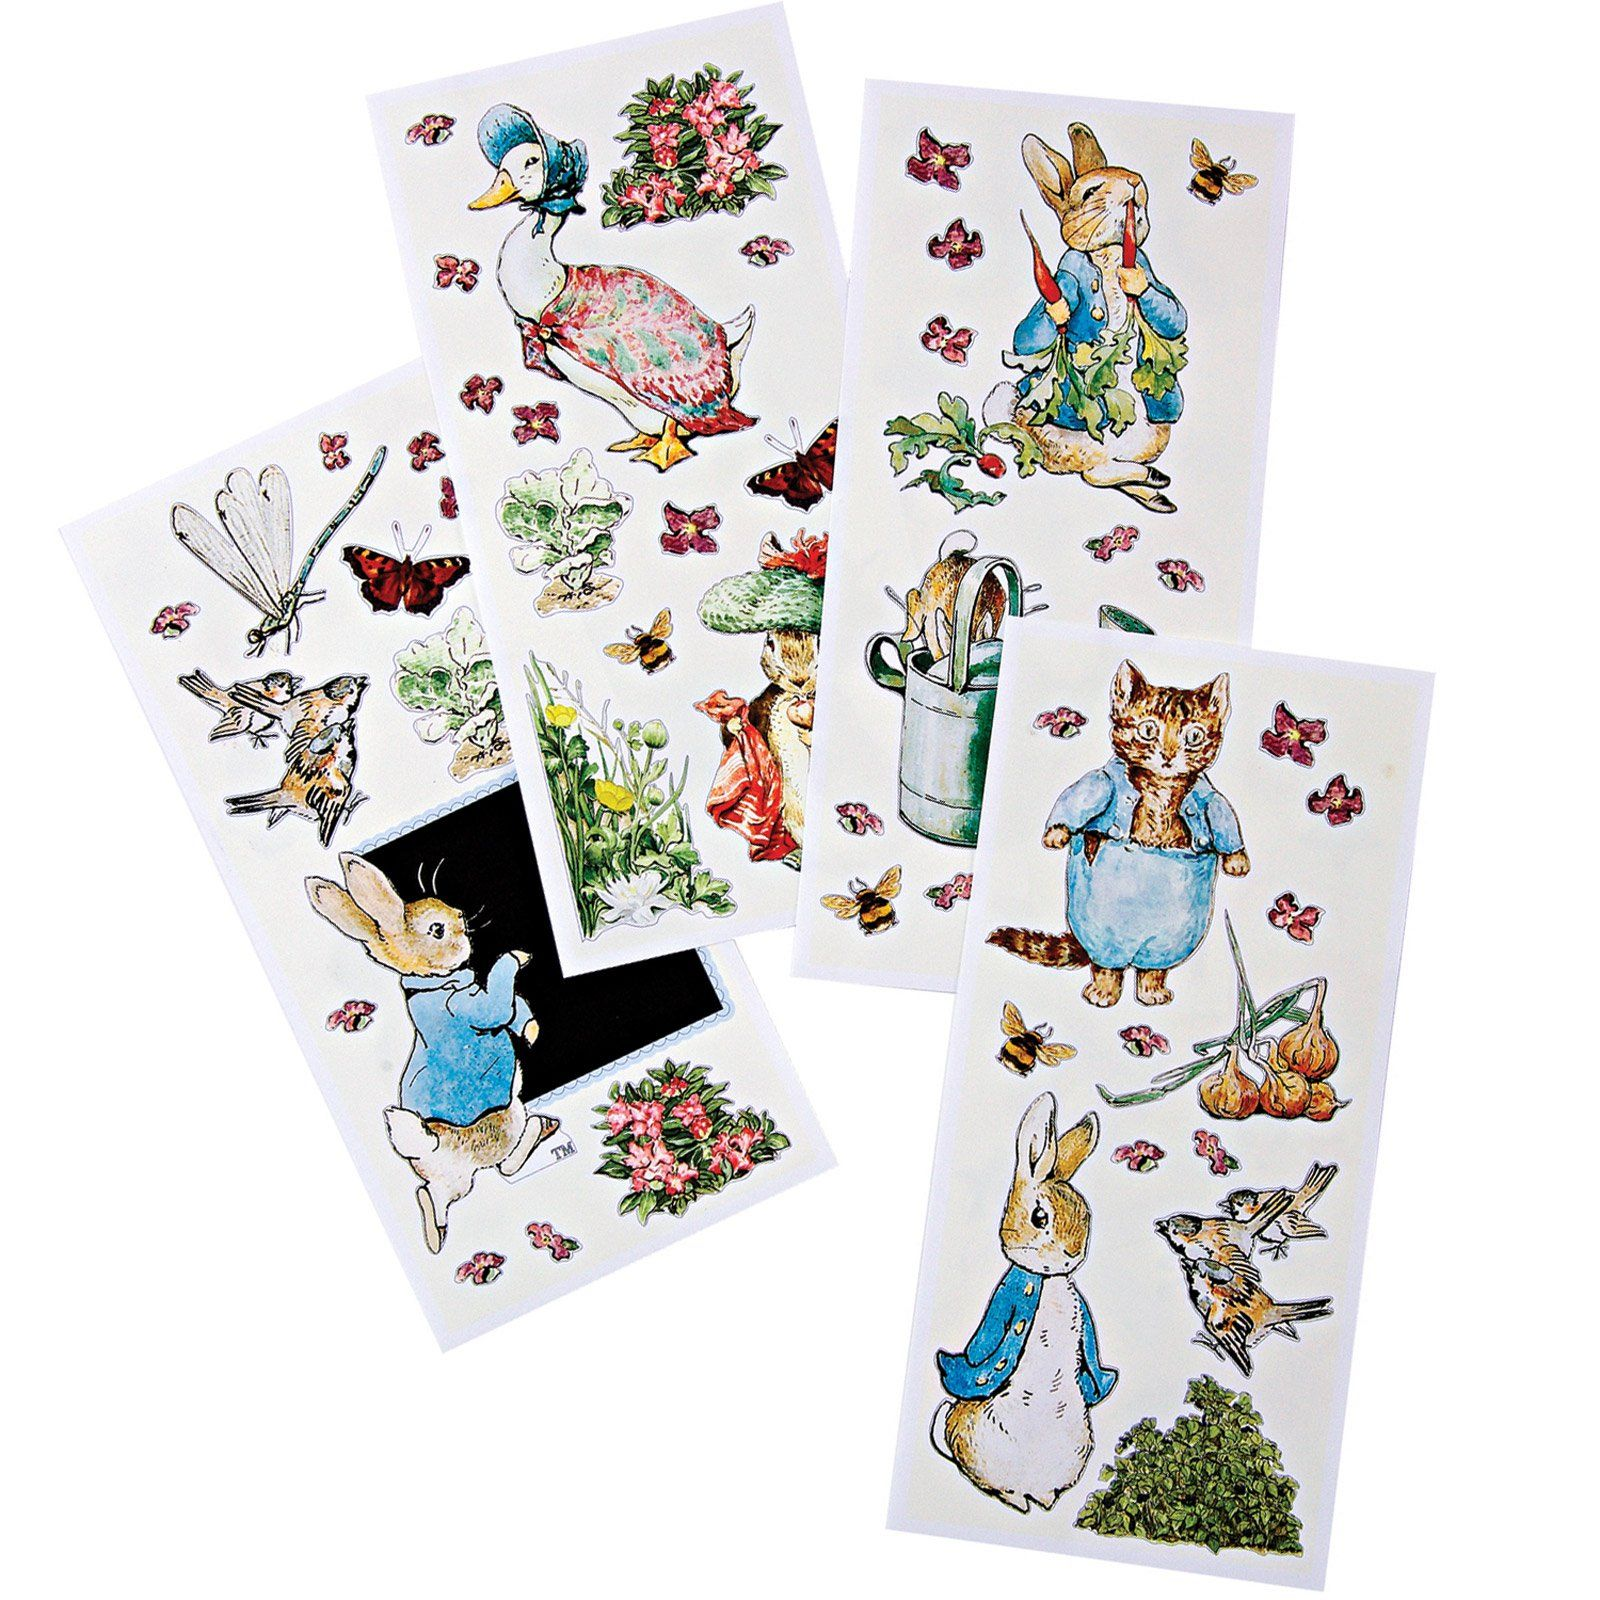 Peter rabbit removable wall stickers 87148 andreas shower peter rabbit removable wall stickers 87148 amipublicfo Gallery